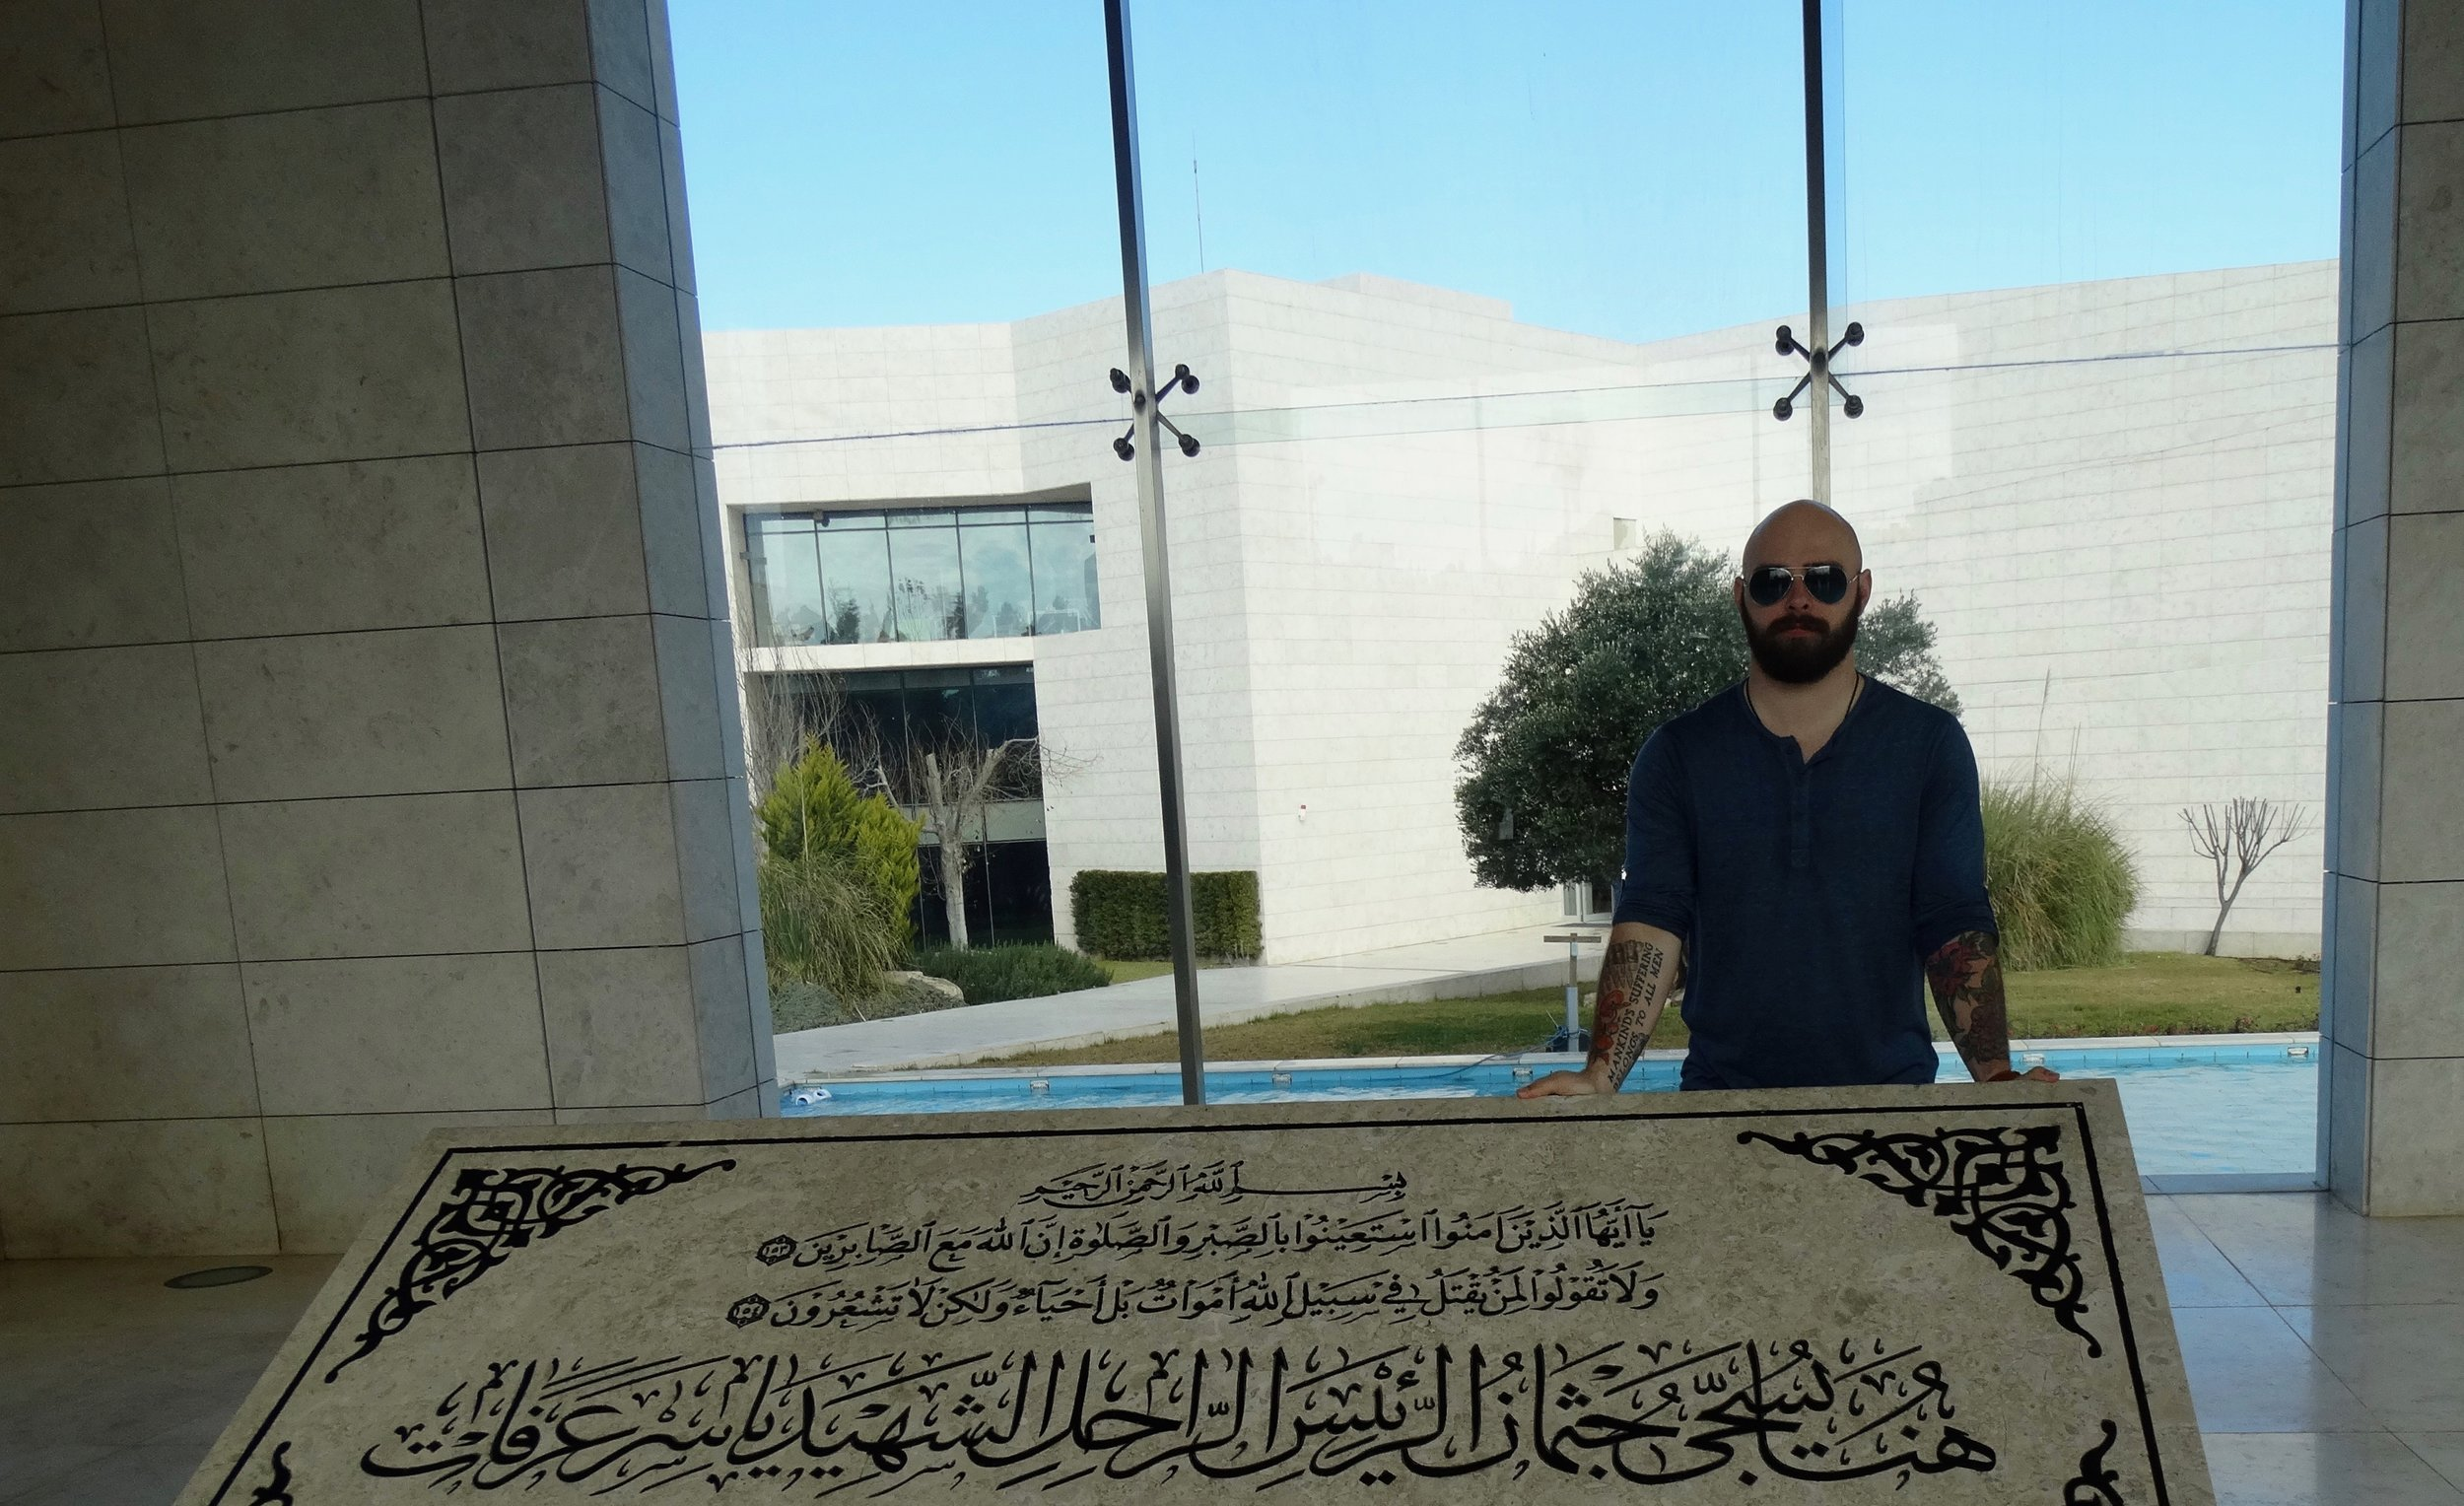 At Yasser Arafat's tomb. What a shithead.